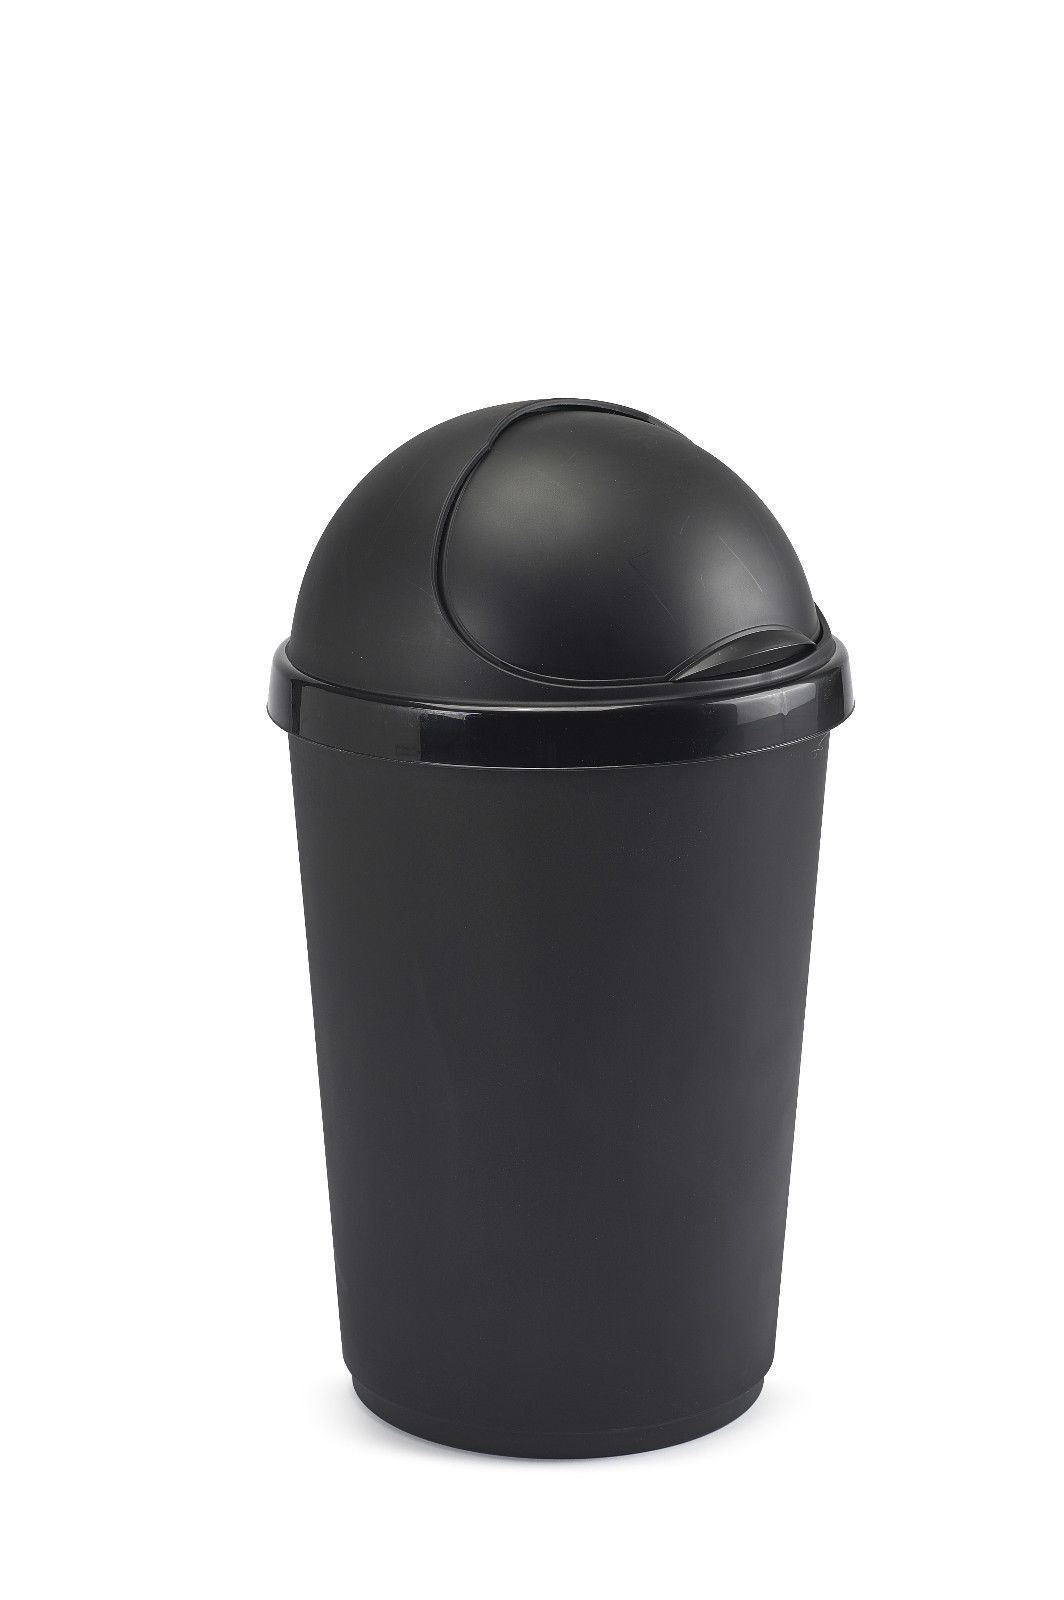 New Plastic Swing Bullet Recycle Recycling Touch Top Bin